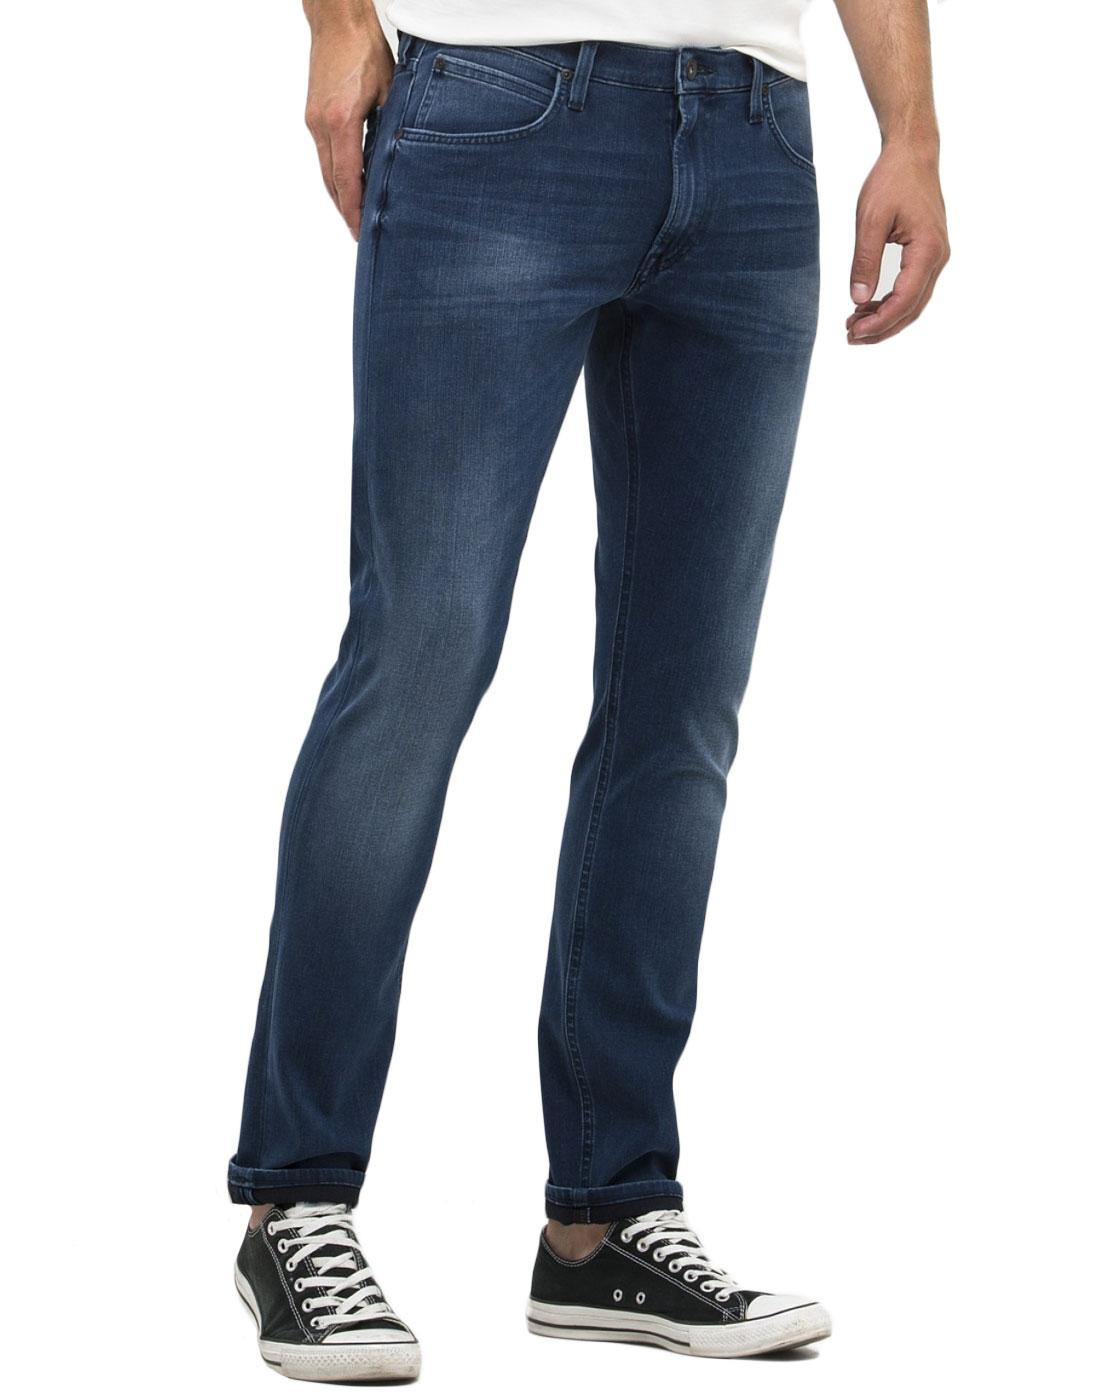 Luke LEE Retro Mod Slim Tapered Skyline Blue Jeans